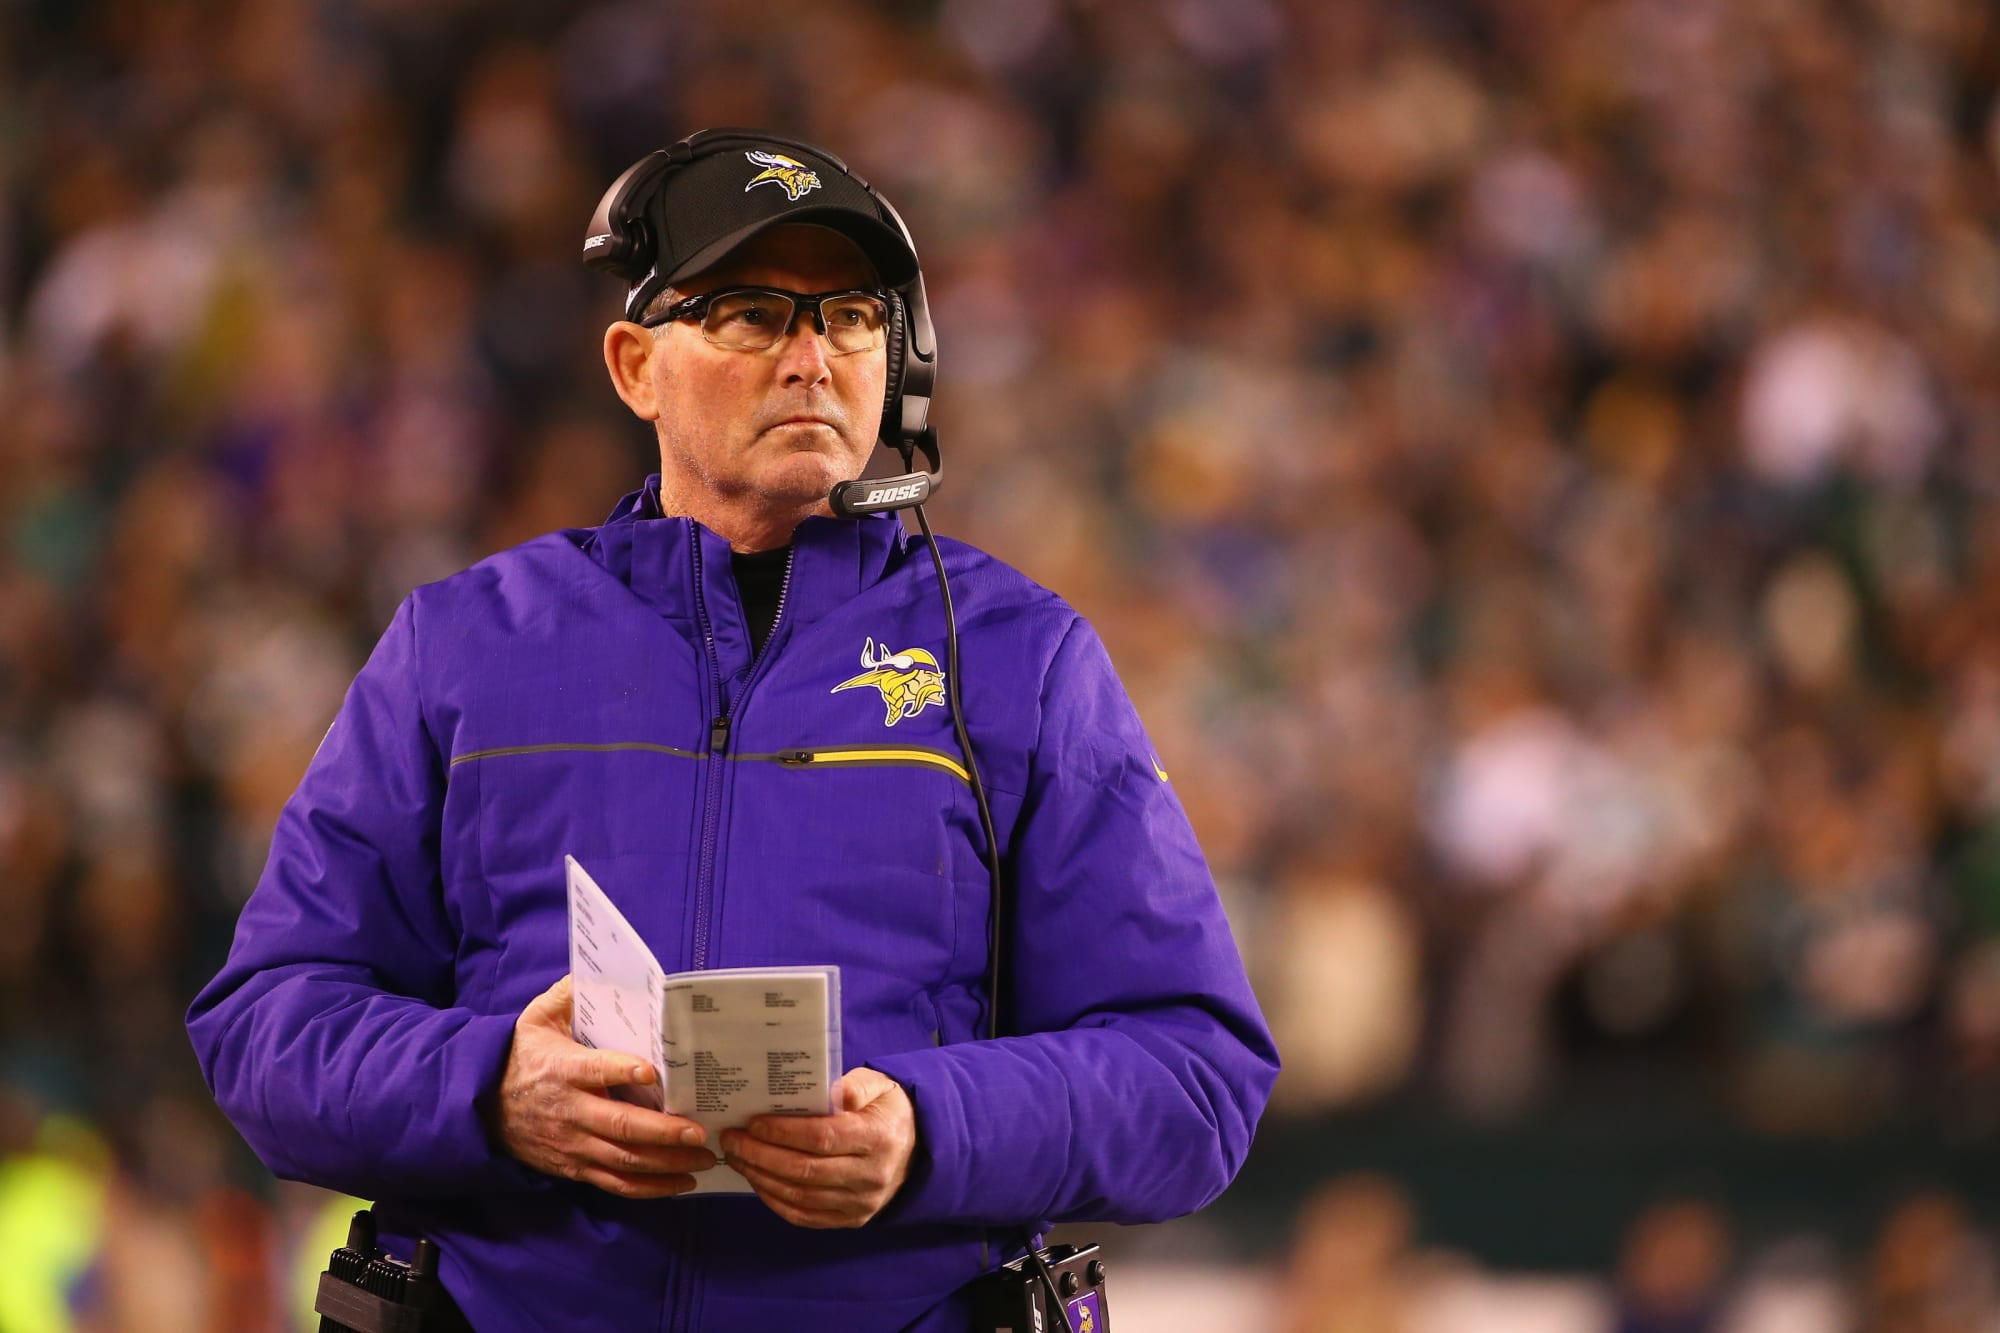 Could the Minnesota Vikings move on from Mike Zimmer after 2020?